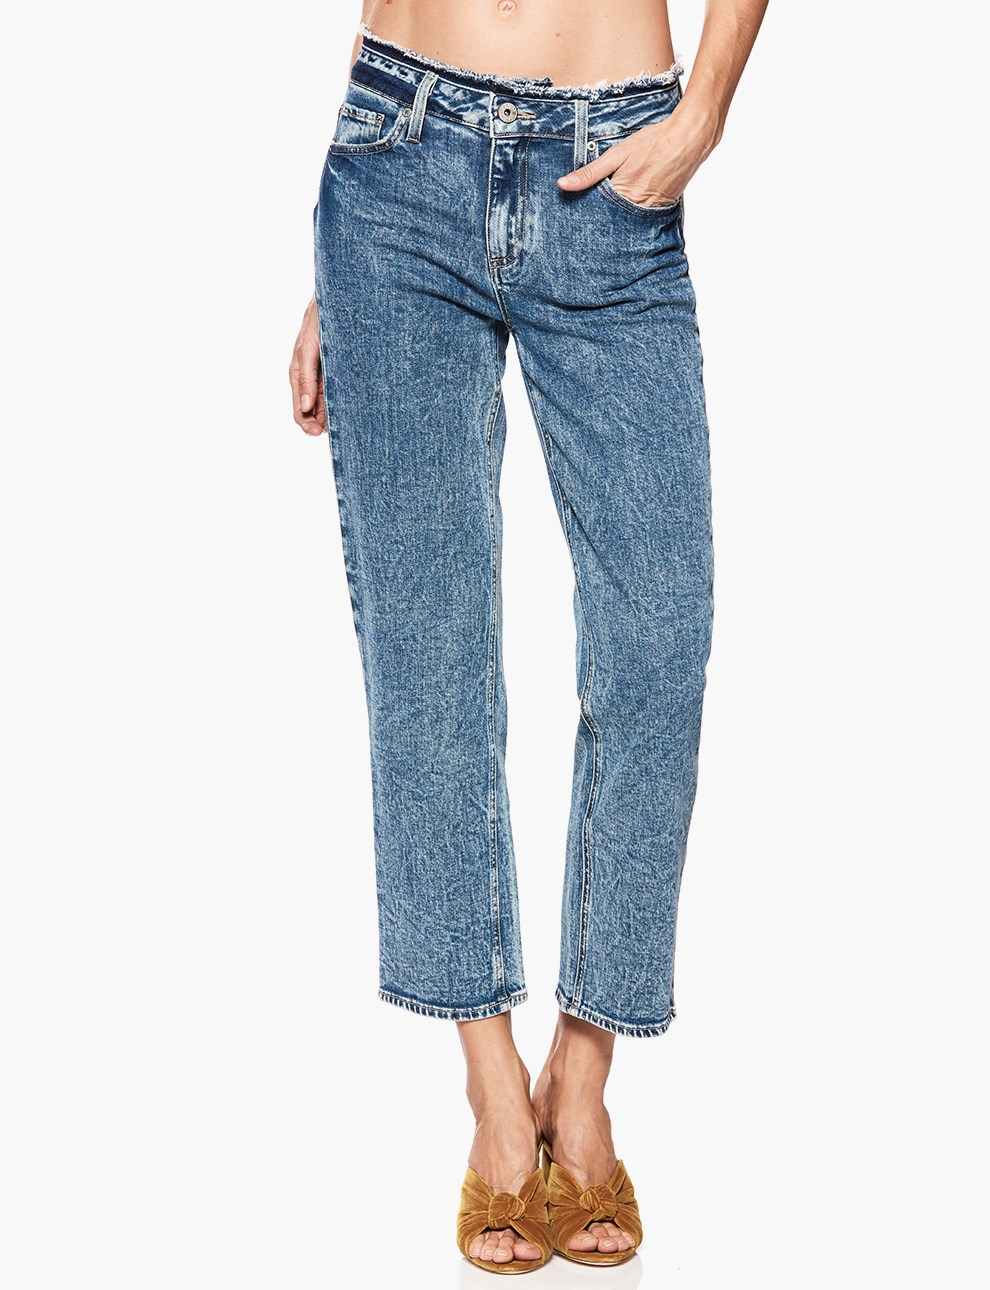 Mineral Wash Cropped Jeans